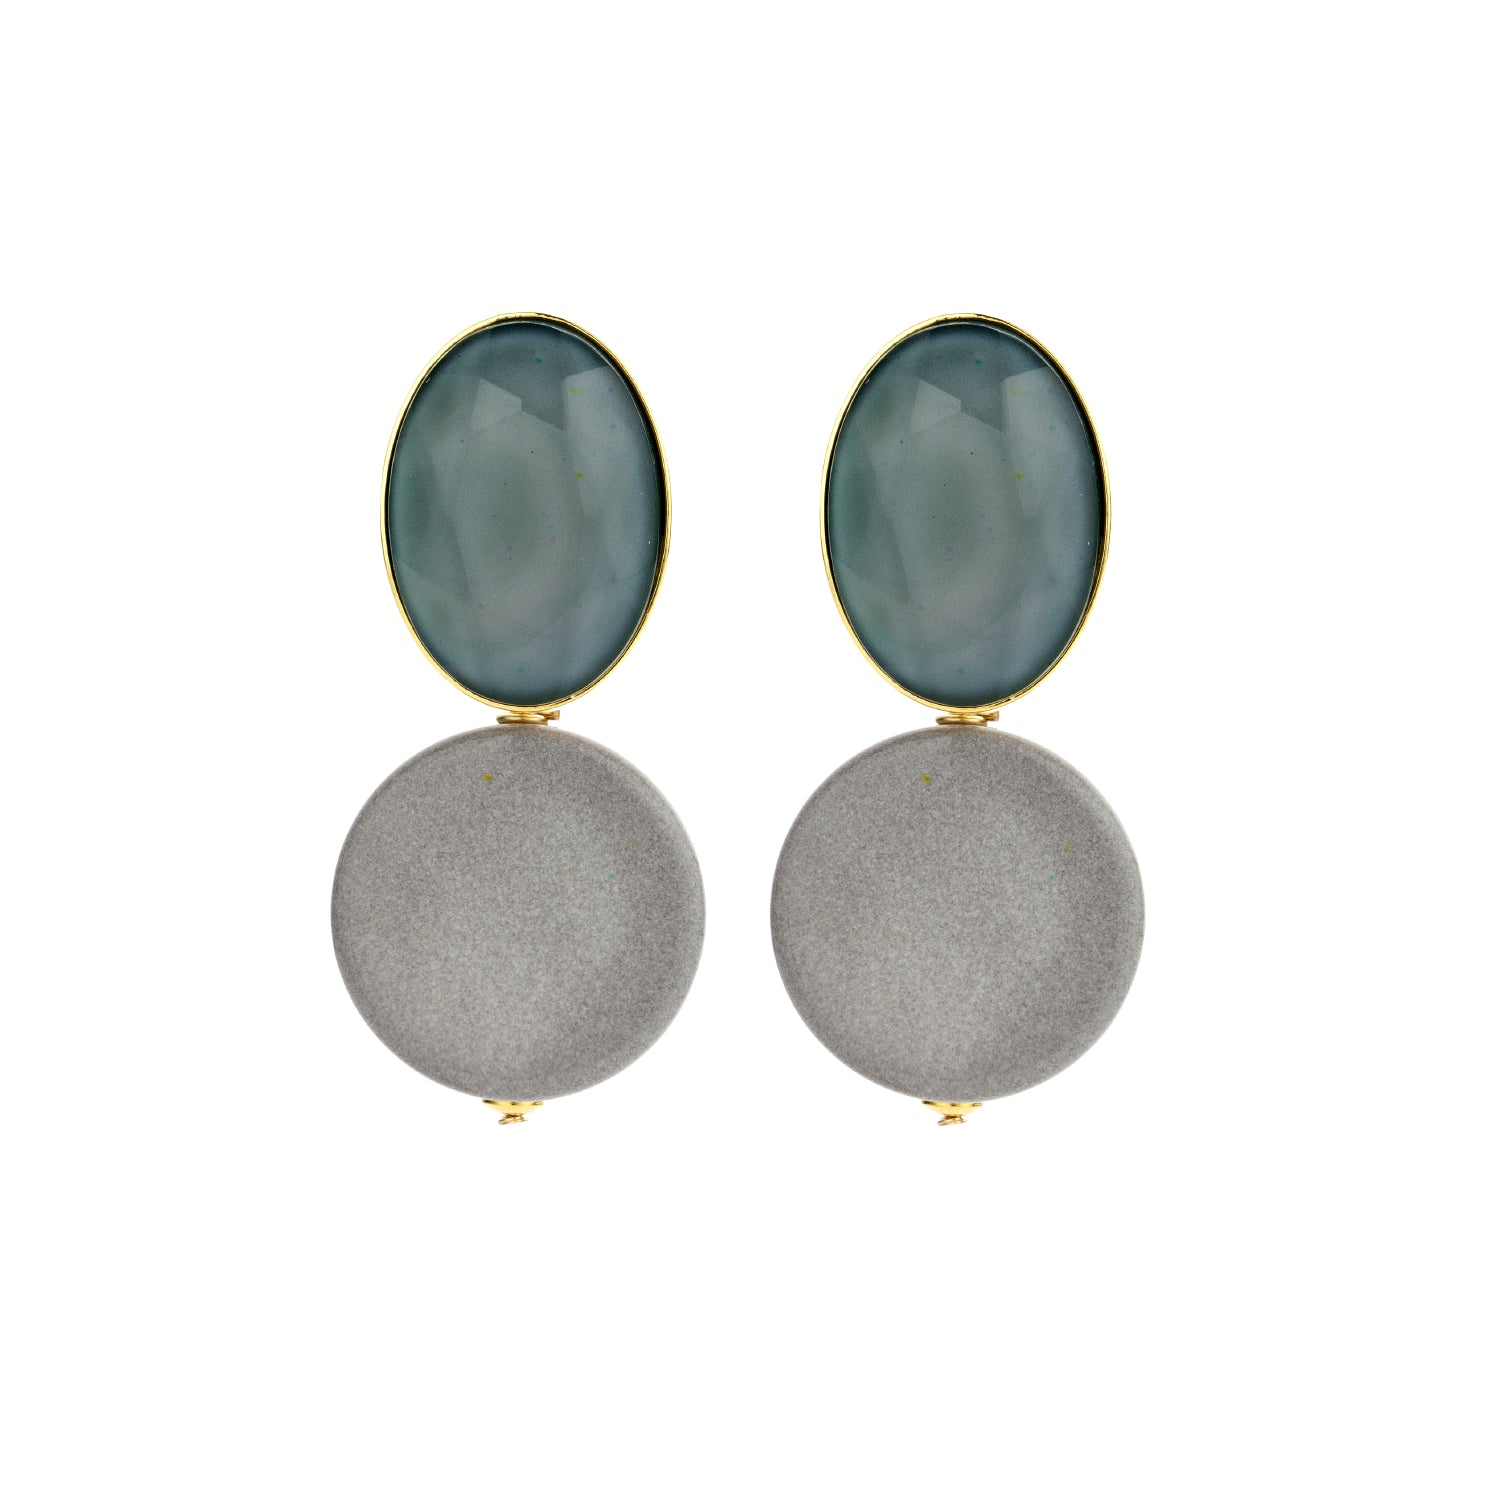 Mona jeans blue earrings - Souvenirs de Pomme